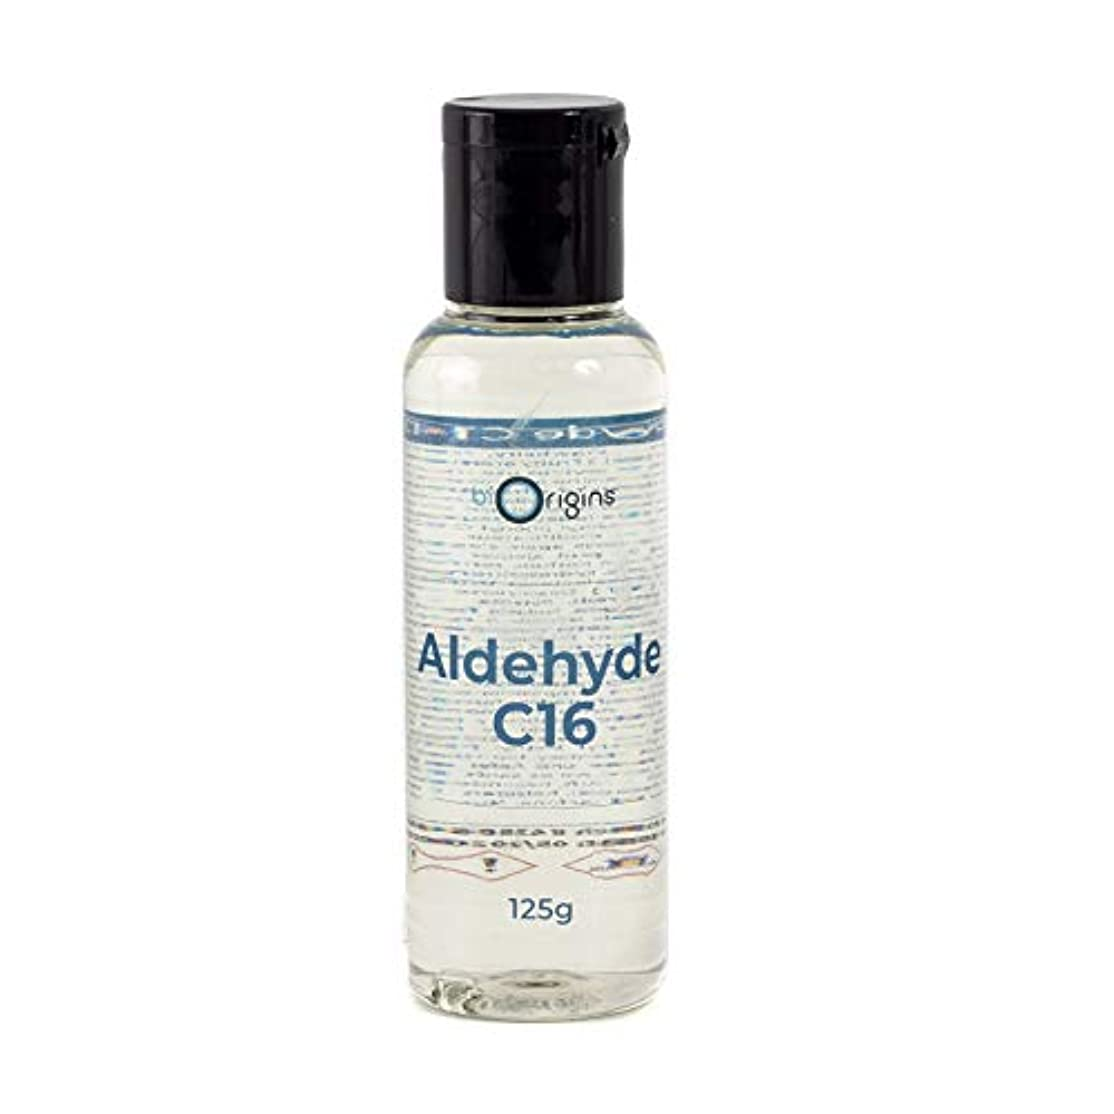 ネズミ魅力修理工Mystic Moments | Aldehyde C16 (Ethyl Methyl Phenyl Glycidate) - 250g